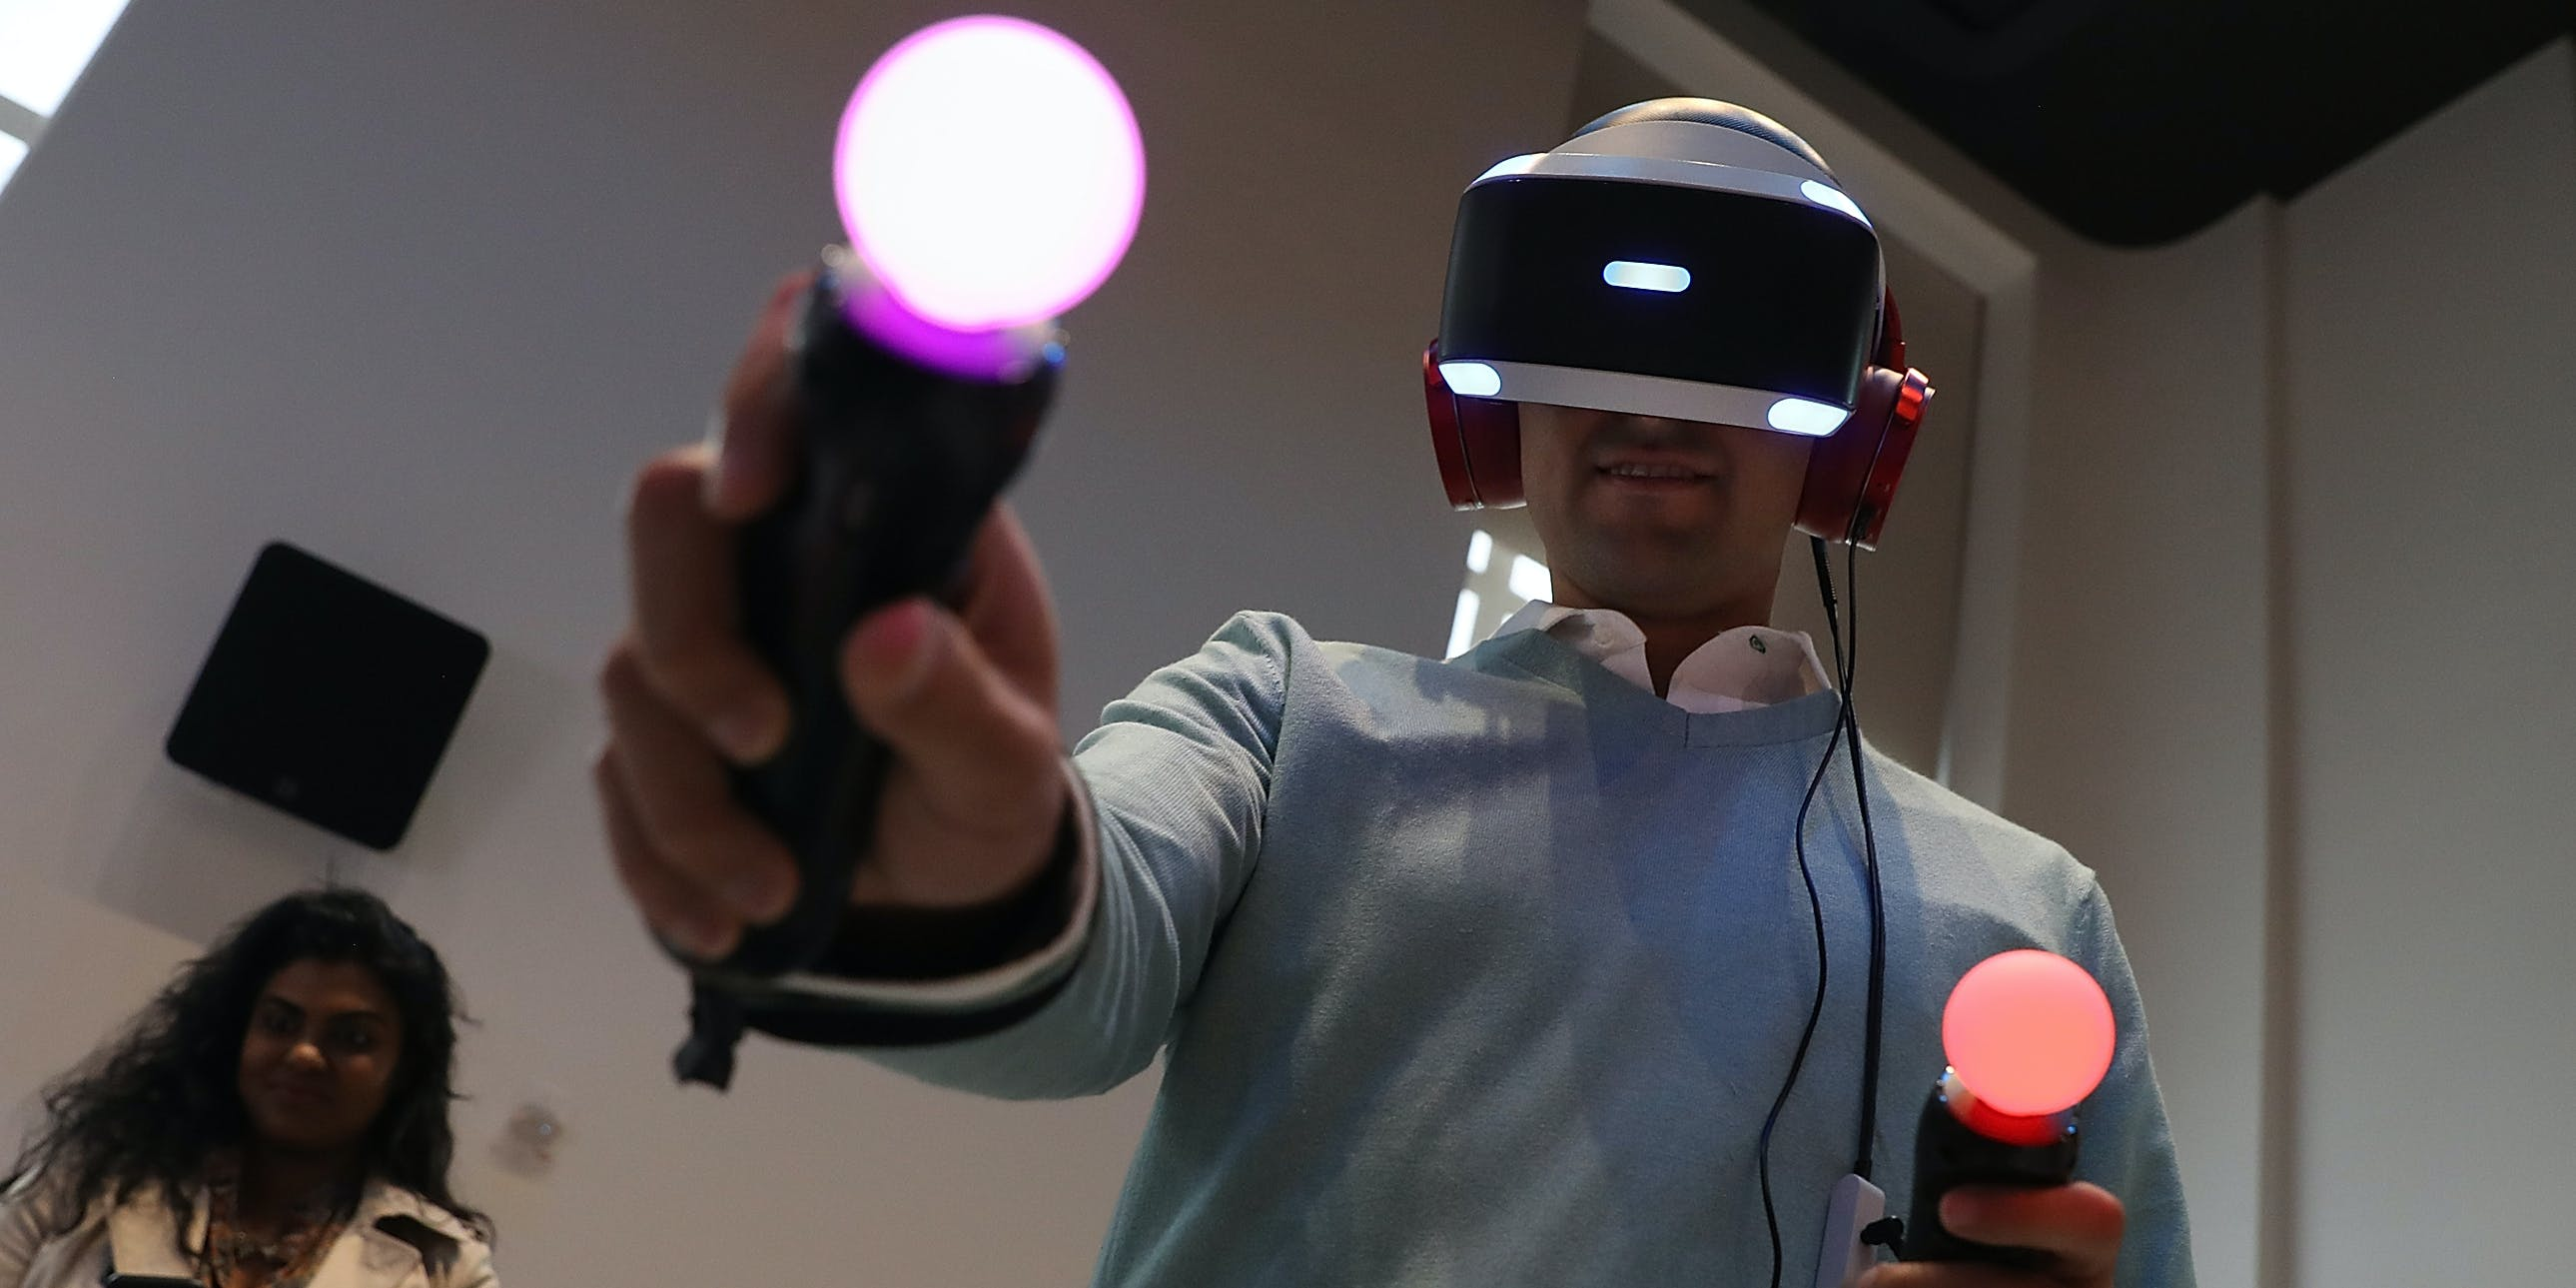 NEW YORK, NY - OCTOBER 13:  A customer tries the new PlayStation VR at Sony Square NYC on October 13, 2016 in New York City.  Sony launched its $399 PlayStation VR that links to PlayStation 4  to give gamers a virtual reality gaming experience.  (Photo by Justin Sullivan/Getty Images)